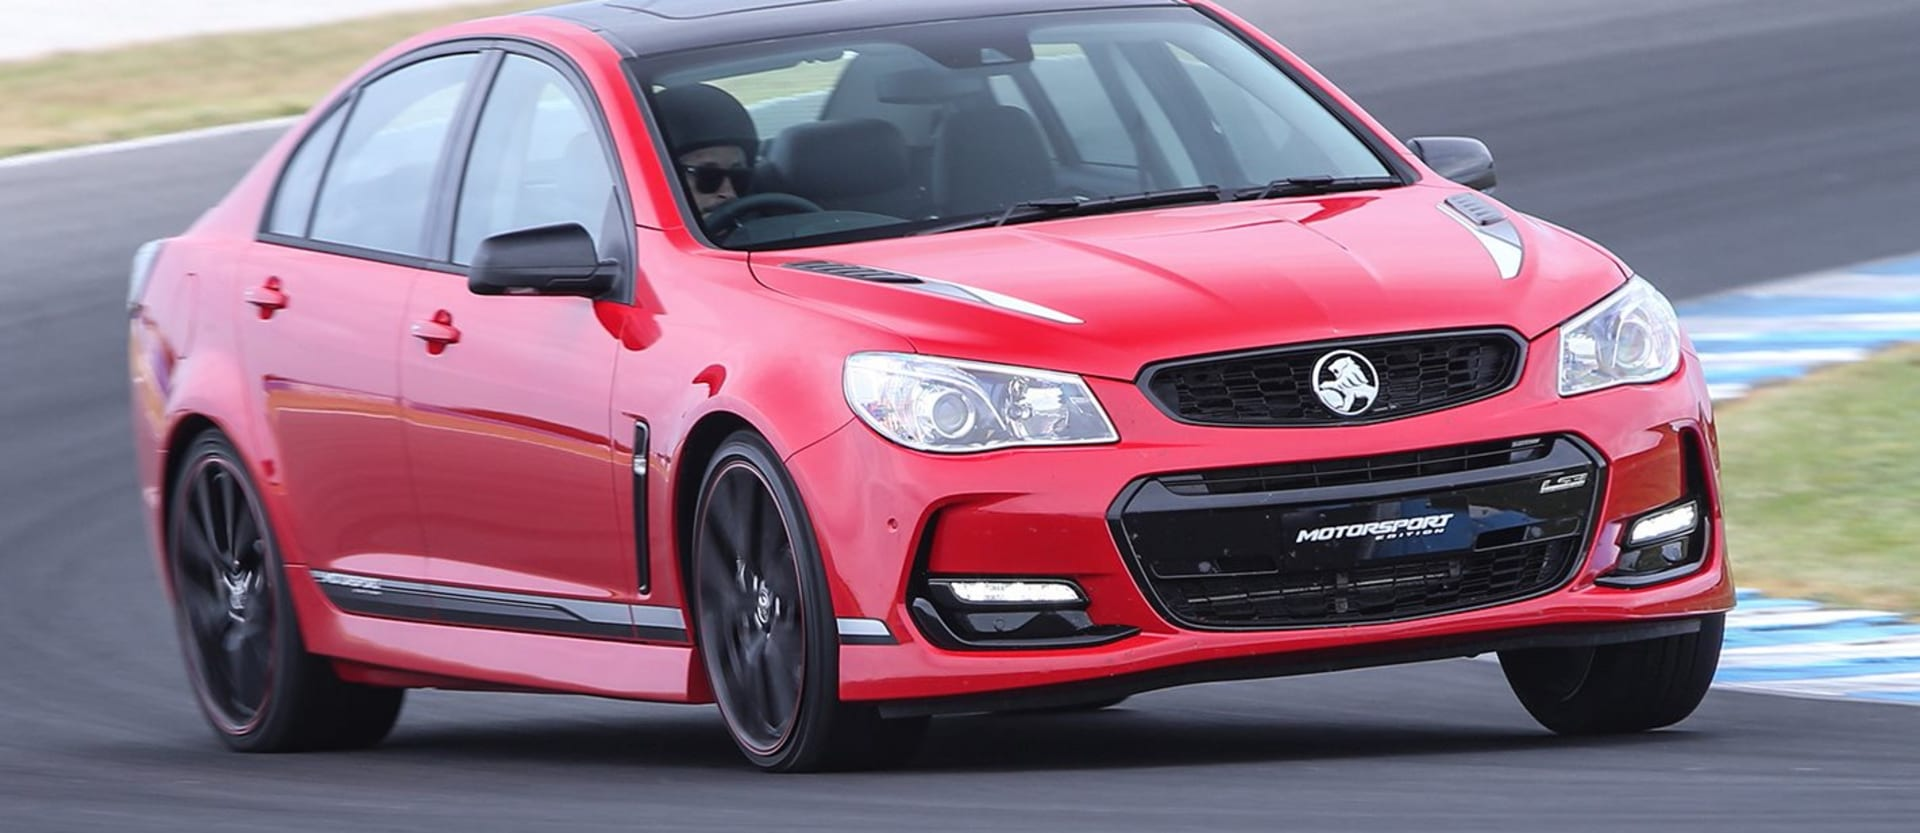 2017 Holden Commodore Motorsport Edition review